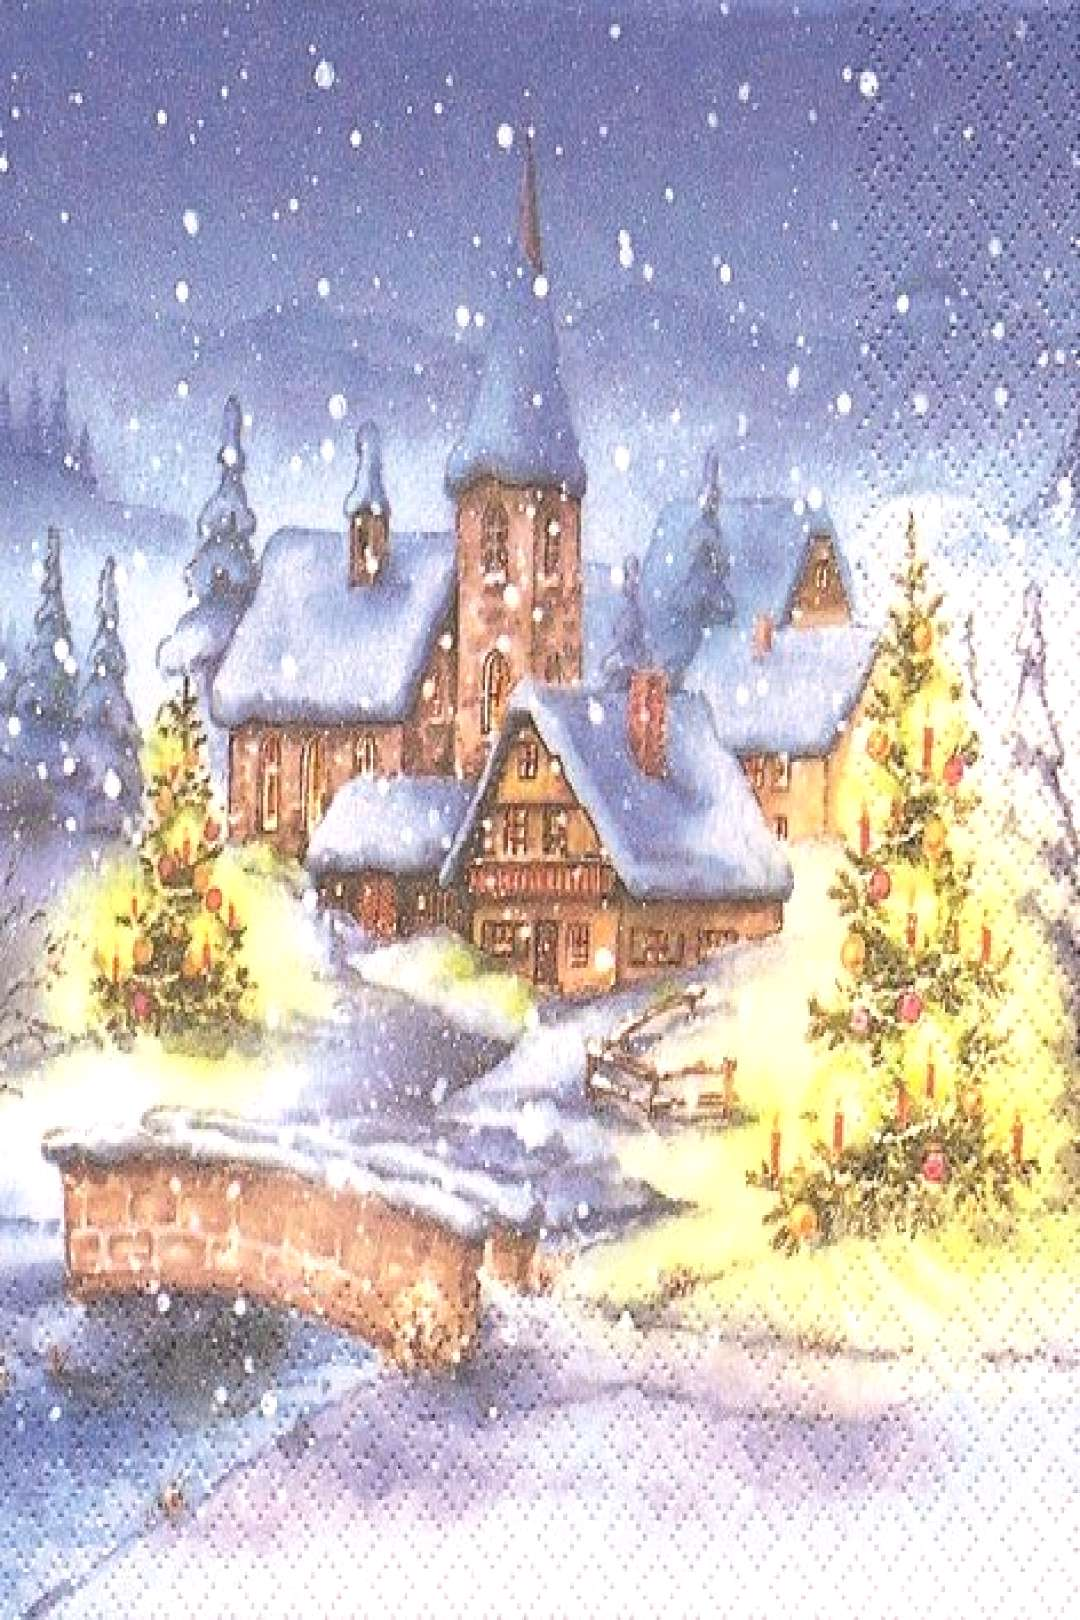 Evening Snowfall Christmas Village Decoupage Paper Napkin Best Picture For Decoupage Glass For Y